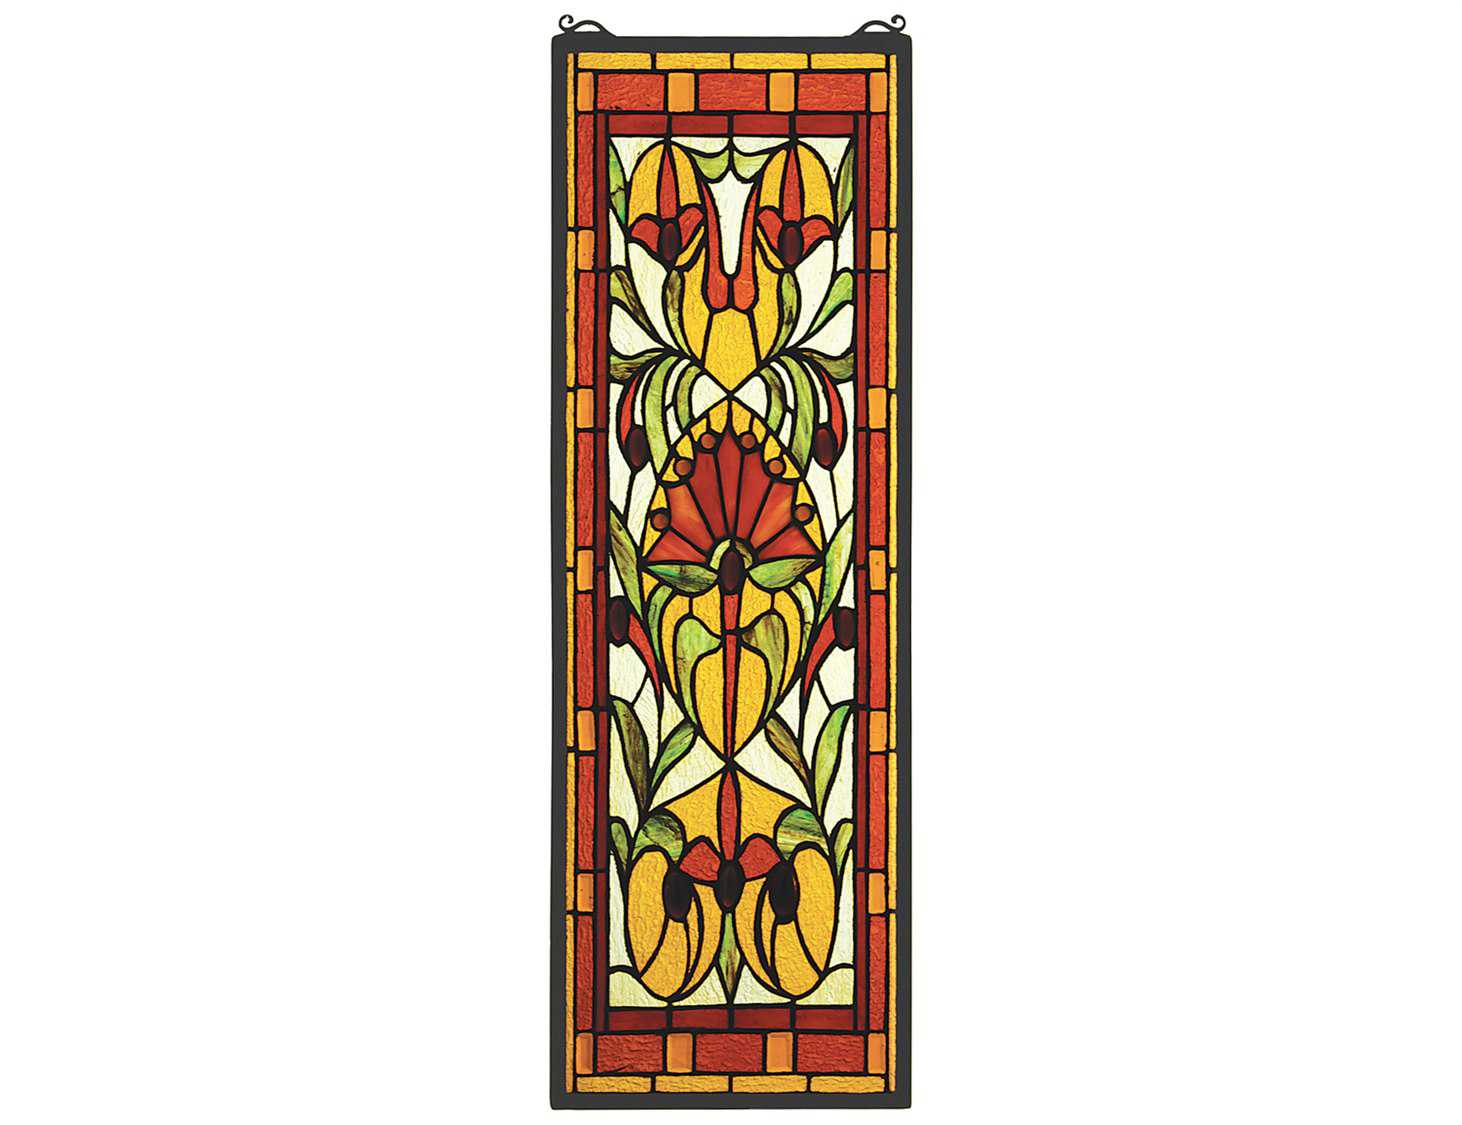 Superb img of Meyda Tiffany Piccadilly Stained Glass Window 52012 with #B99312 color and 1462x1125 pixels